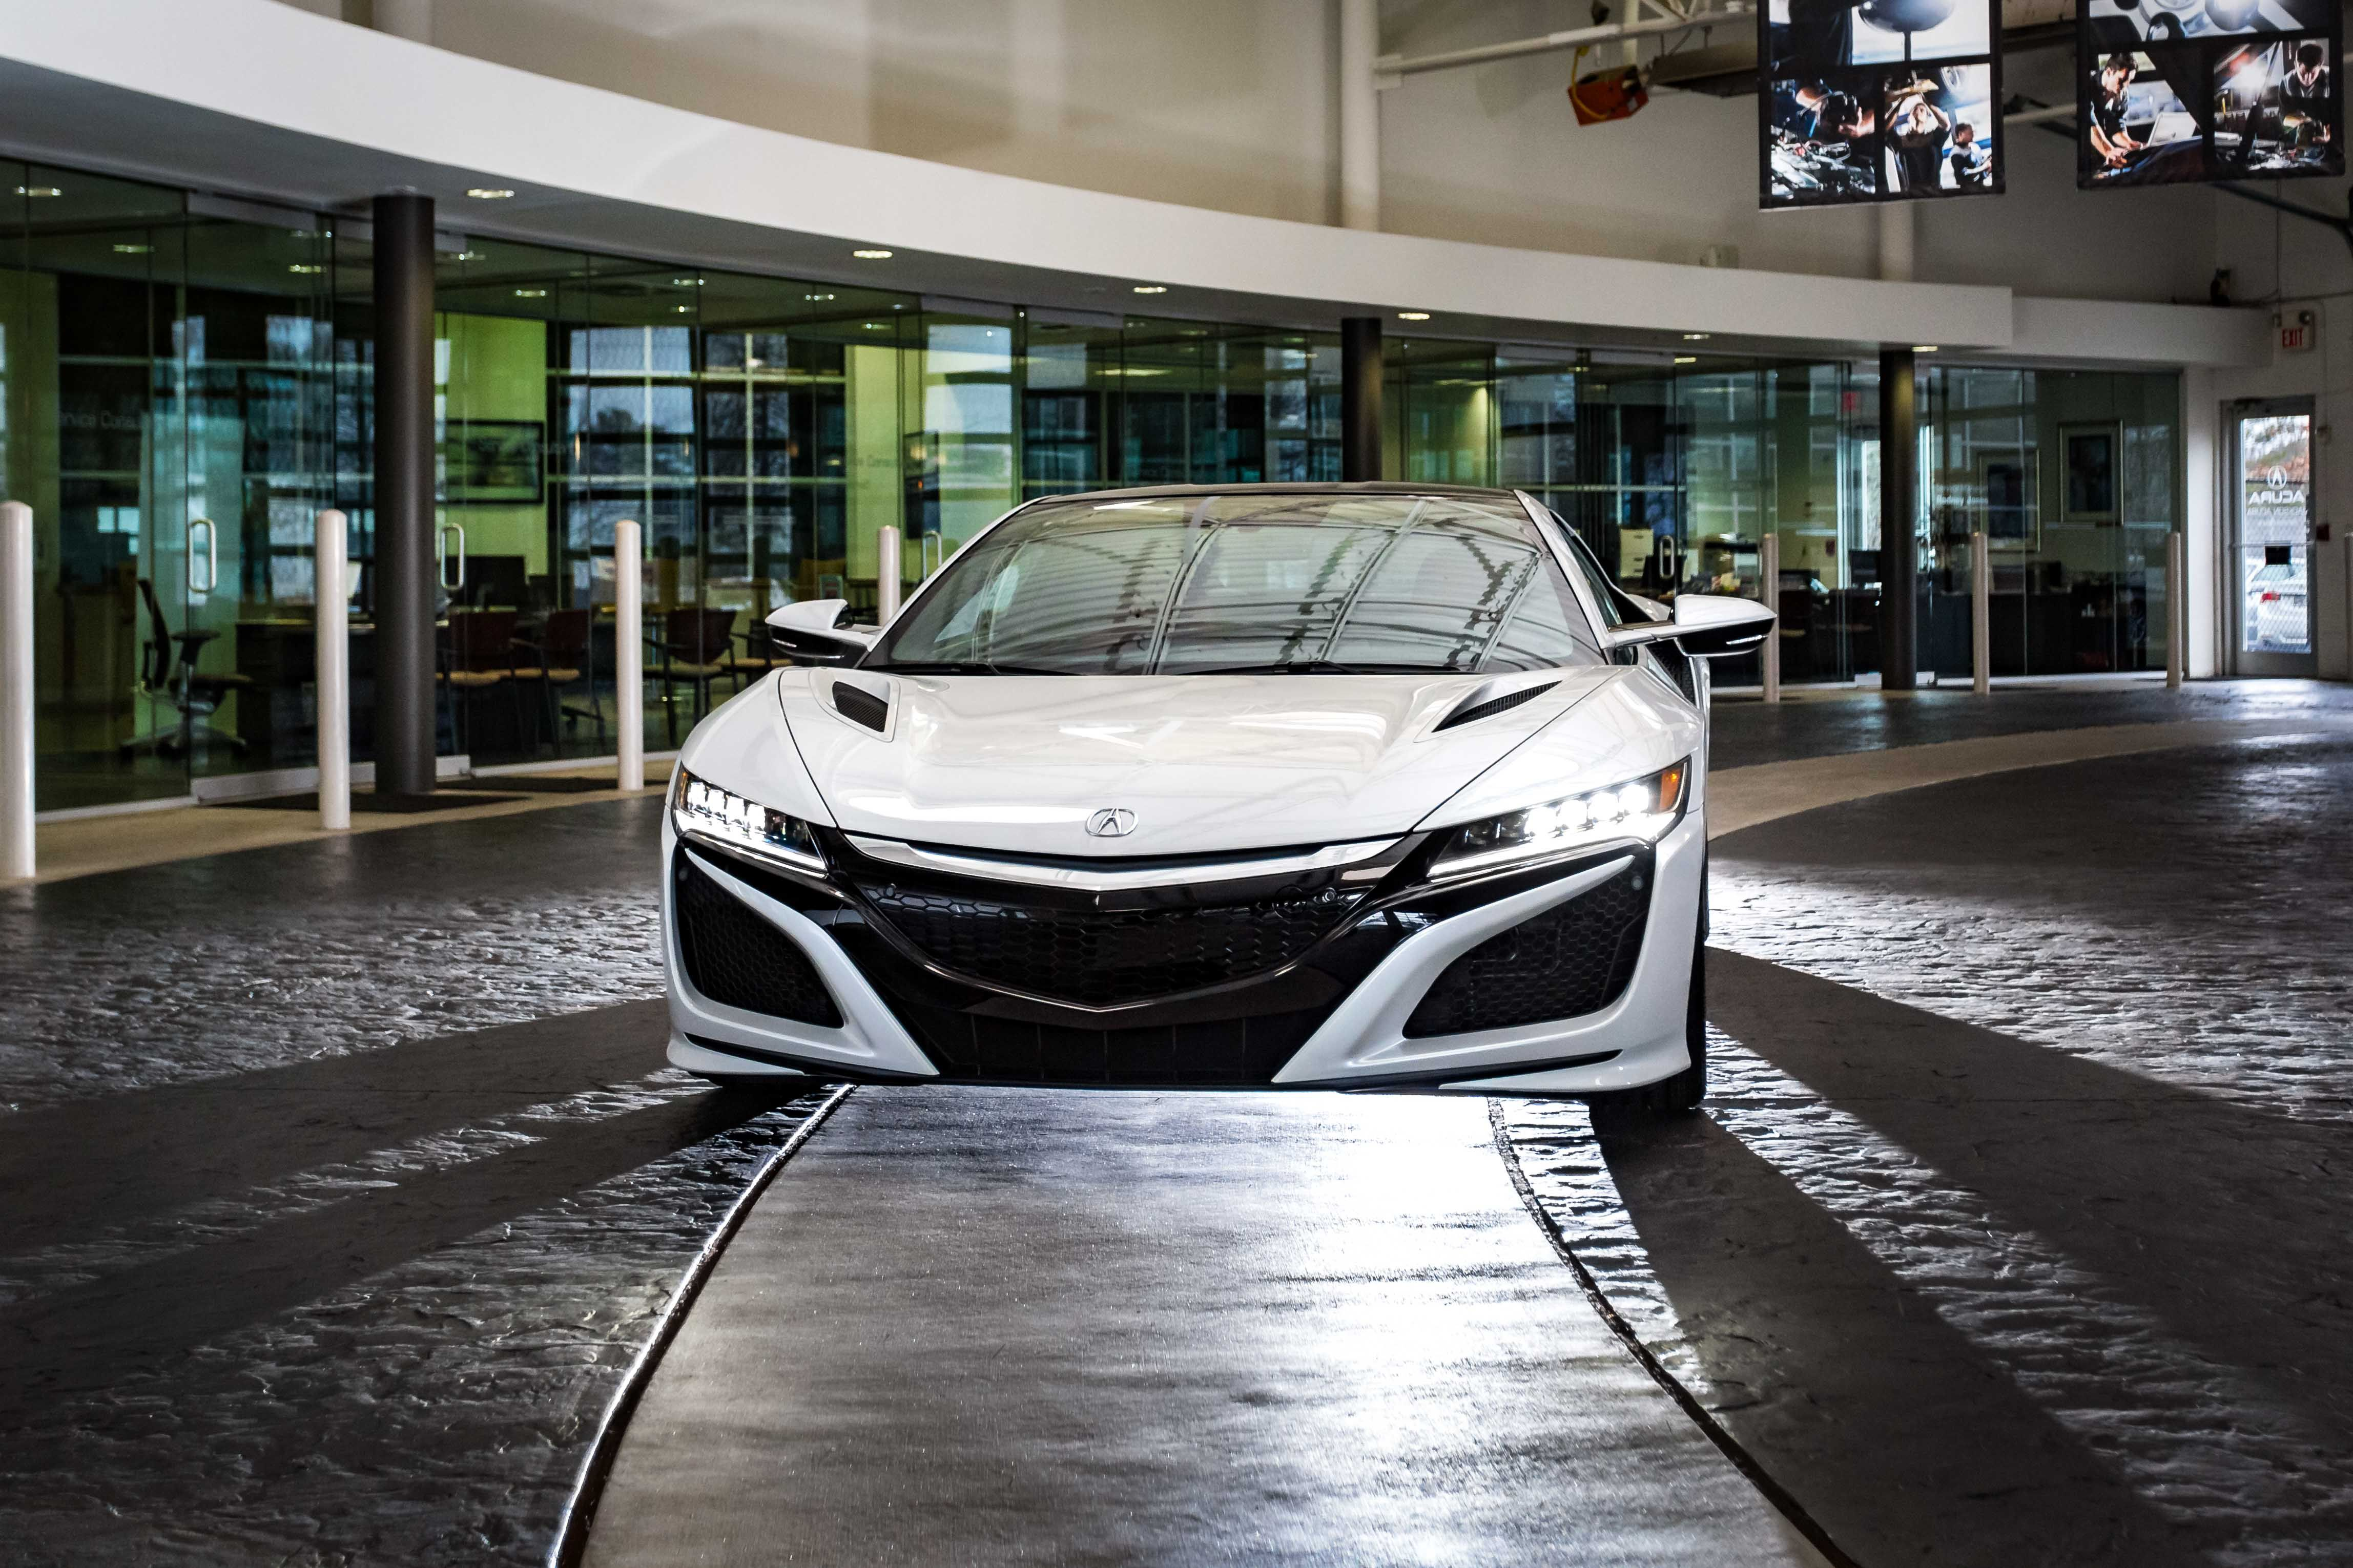 Jackson Acura S 2017 Nsx 759 Made Just For You Used Luxury Cars Acura 2017 Nsx